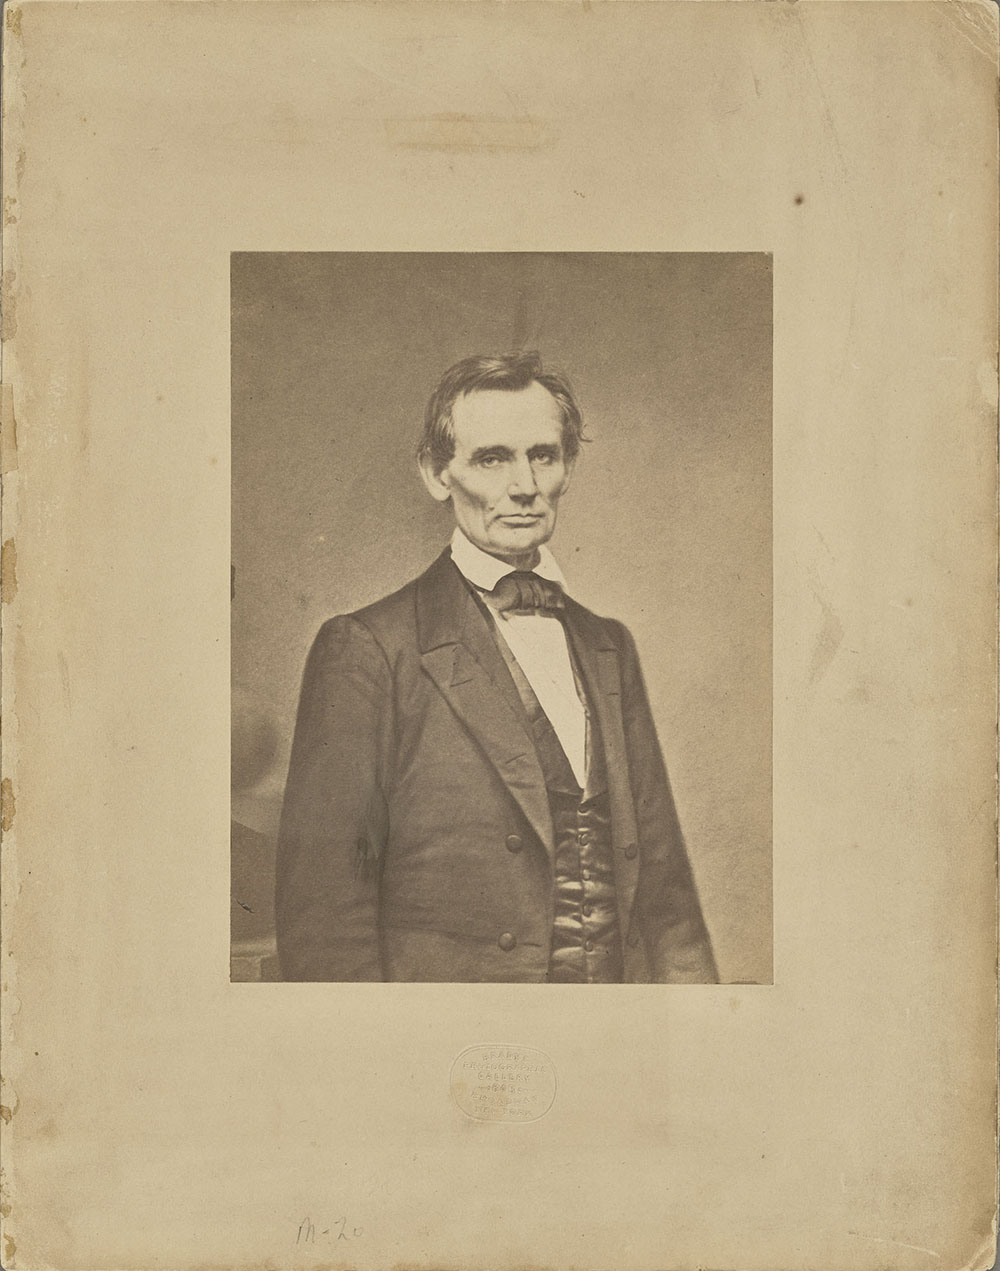 Abraham Lincoln, February 1860, Mathew B. Brady (American, about 1823 - 1896). Salted paper print. Image: 19.5 × 14.4 cm (7 11/16 × 5 11/16 in.). The J. Paul Getty Museum, Los Angeles